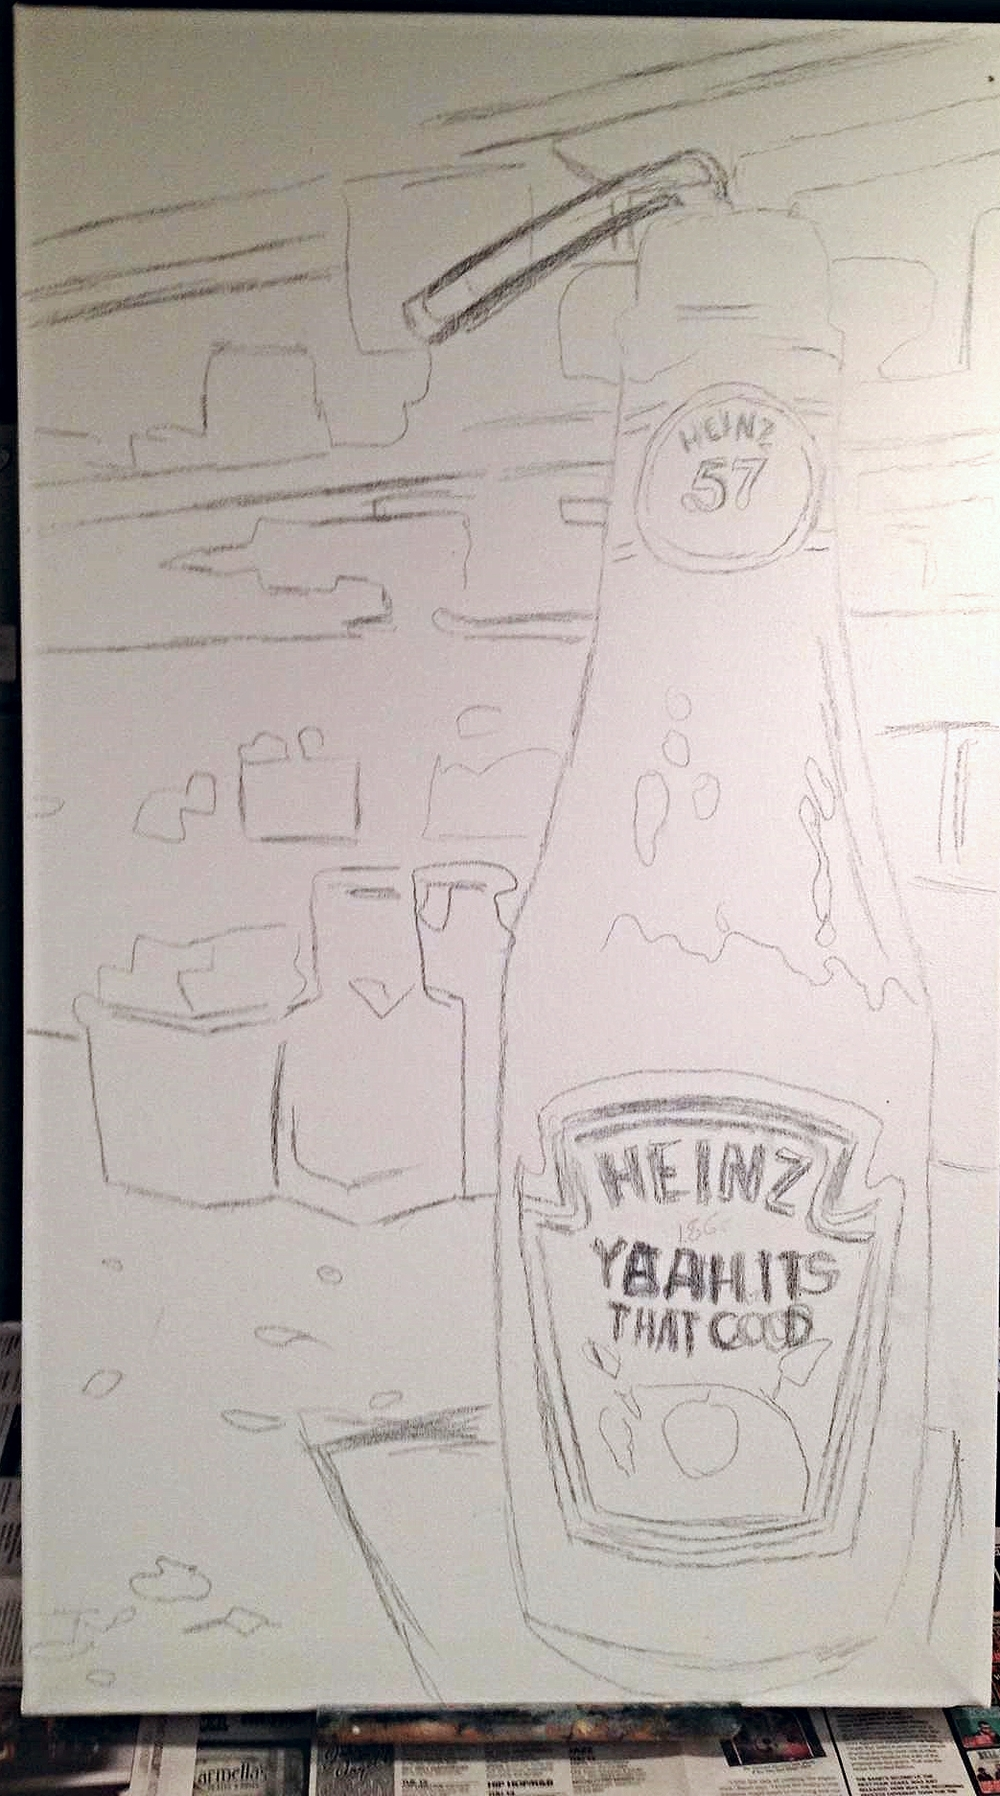 1. I first start off with drawing my sketch of the ketchup bottle in the diner on the canvas. the photo I was using as my reference was from one I took at the counter at Central Diner in Robinson, Pittsburgh.   I didn't have the straw or napkin in the original photo so I had to take a separate photo with a mock set I set up at home and added it to the painting.